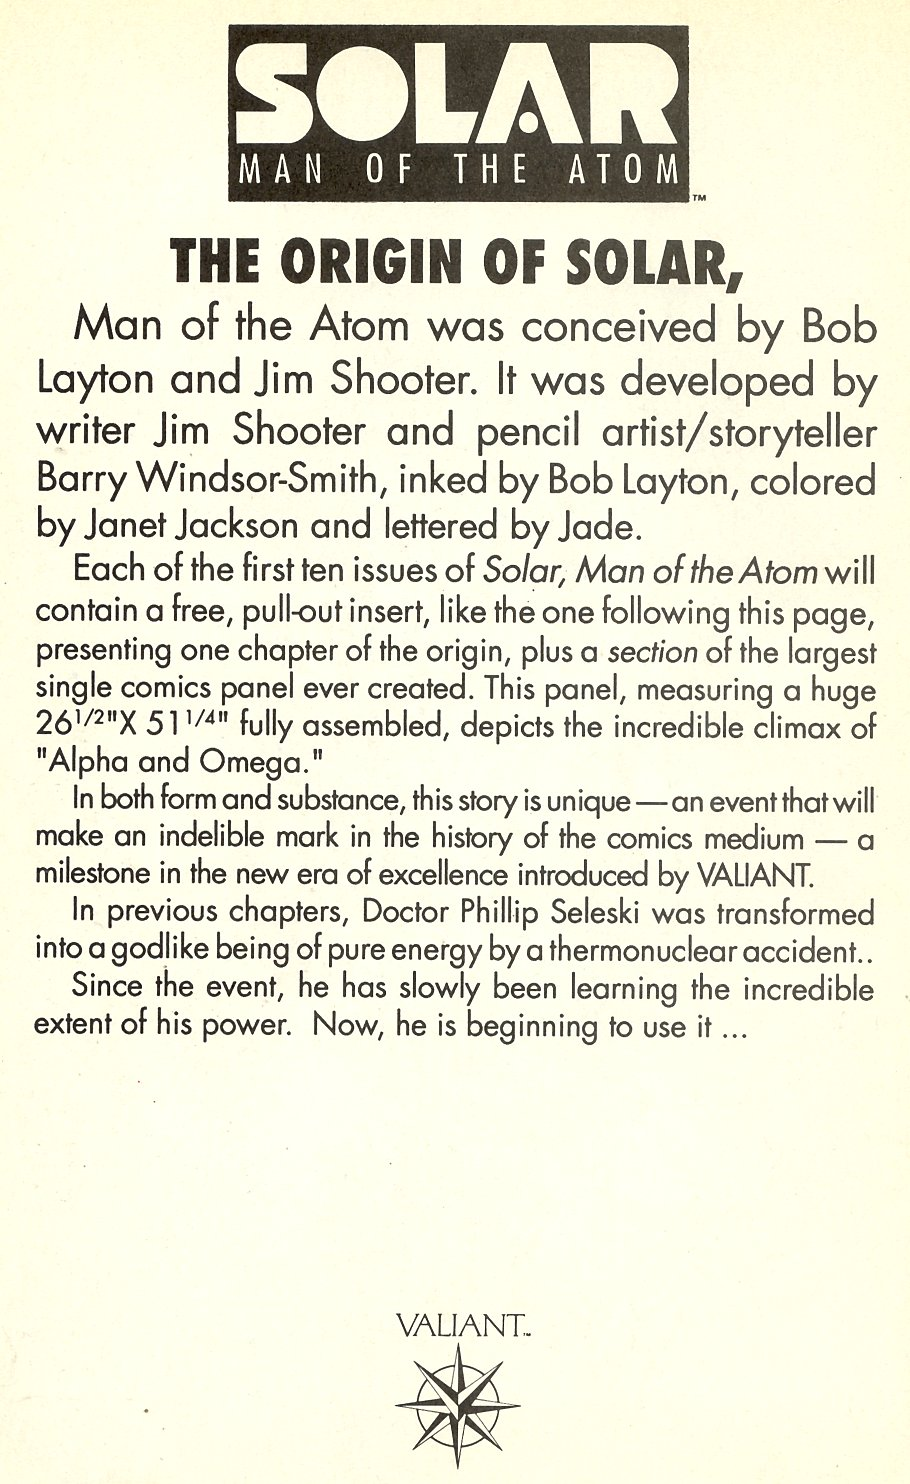 Read online Solar, Man of the Atom comic -  Issue #7 - 18